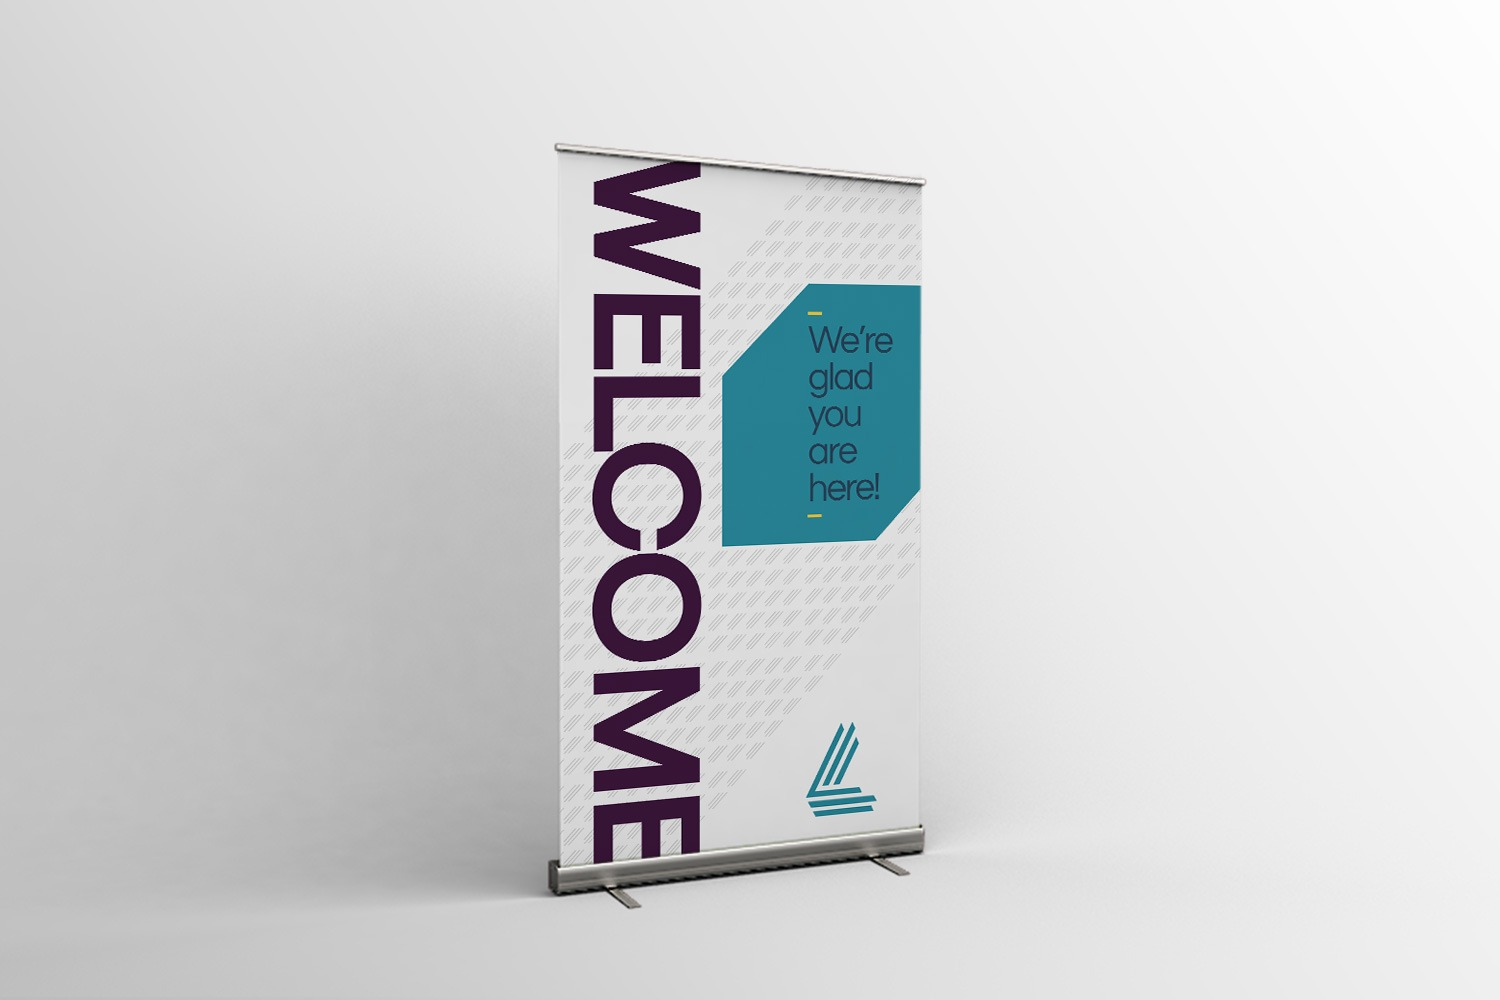 Church Branding Rollup Banners for Welcome design samples & ideas